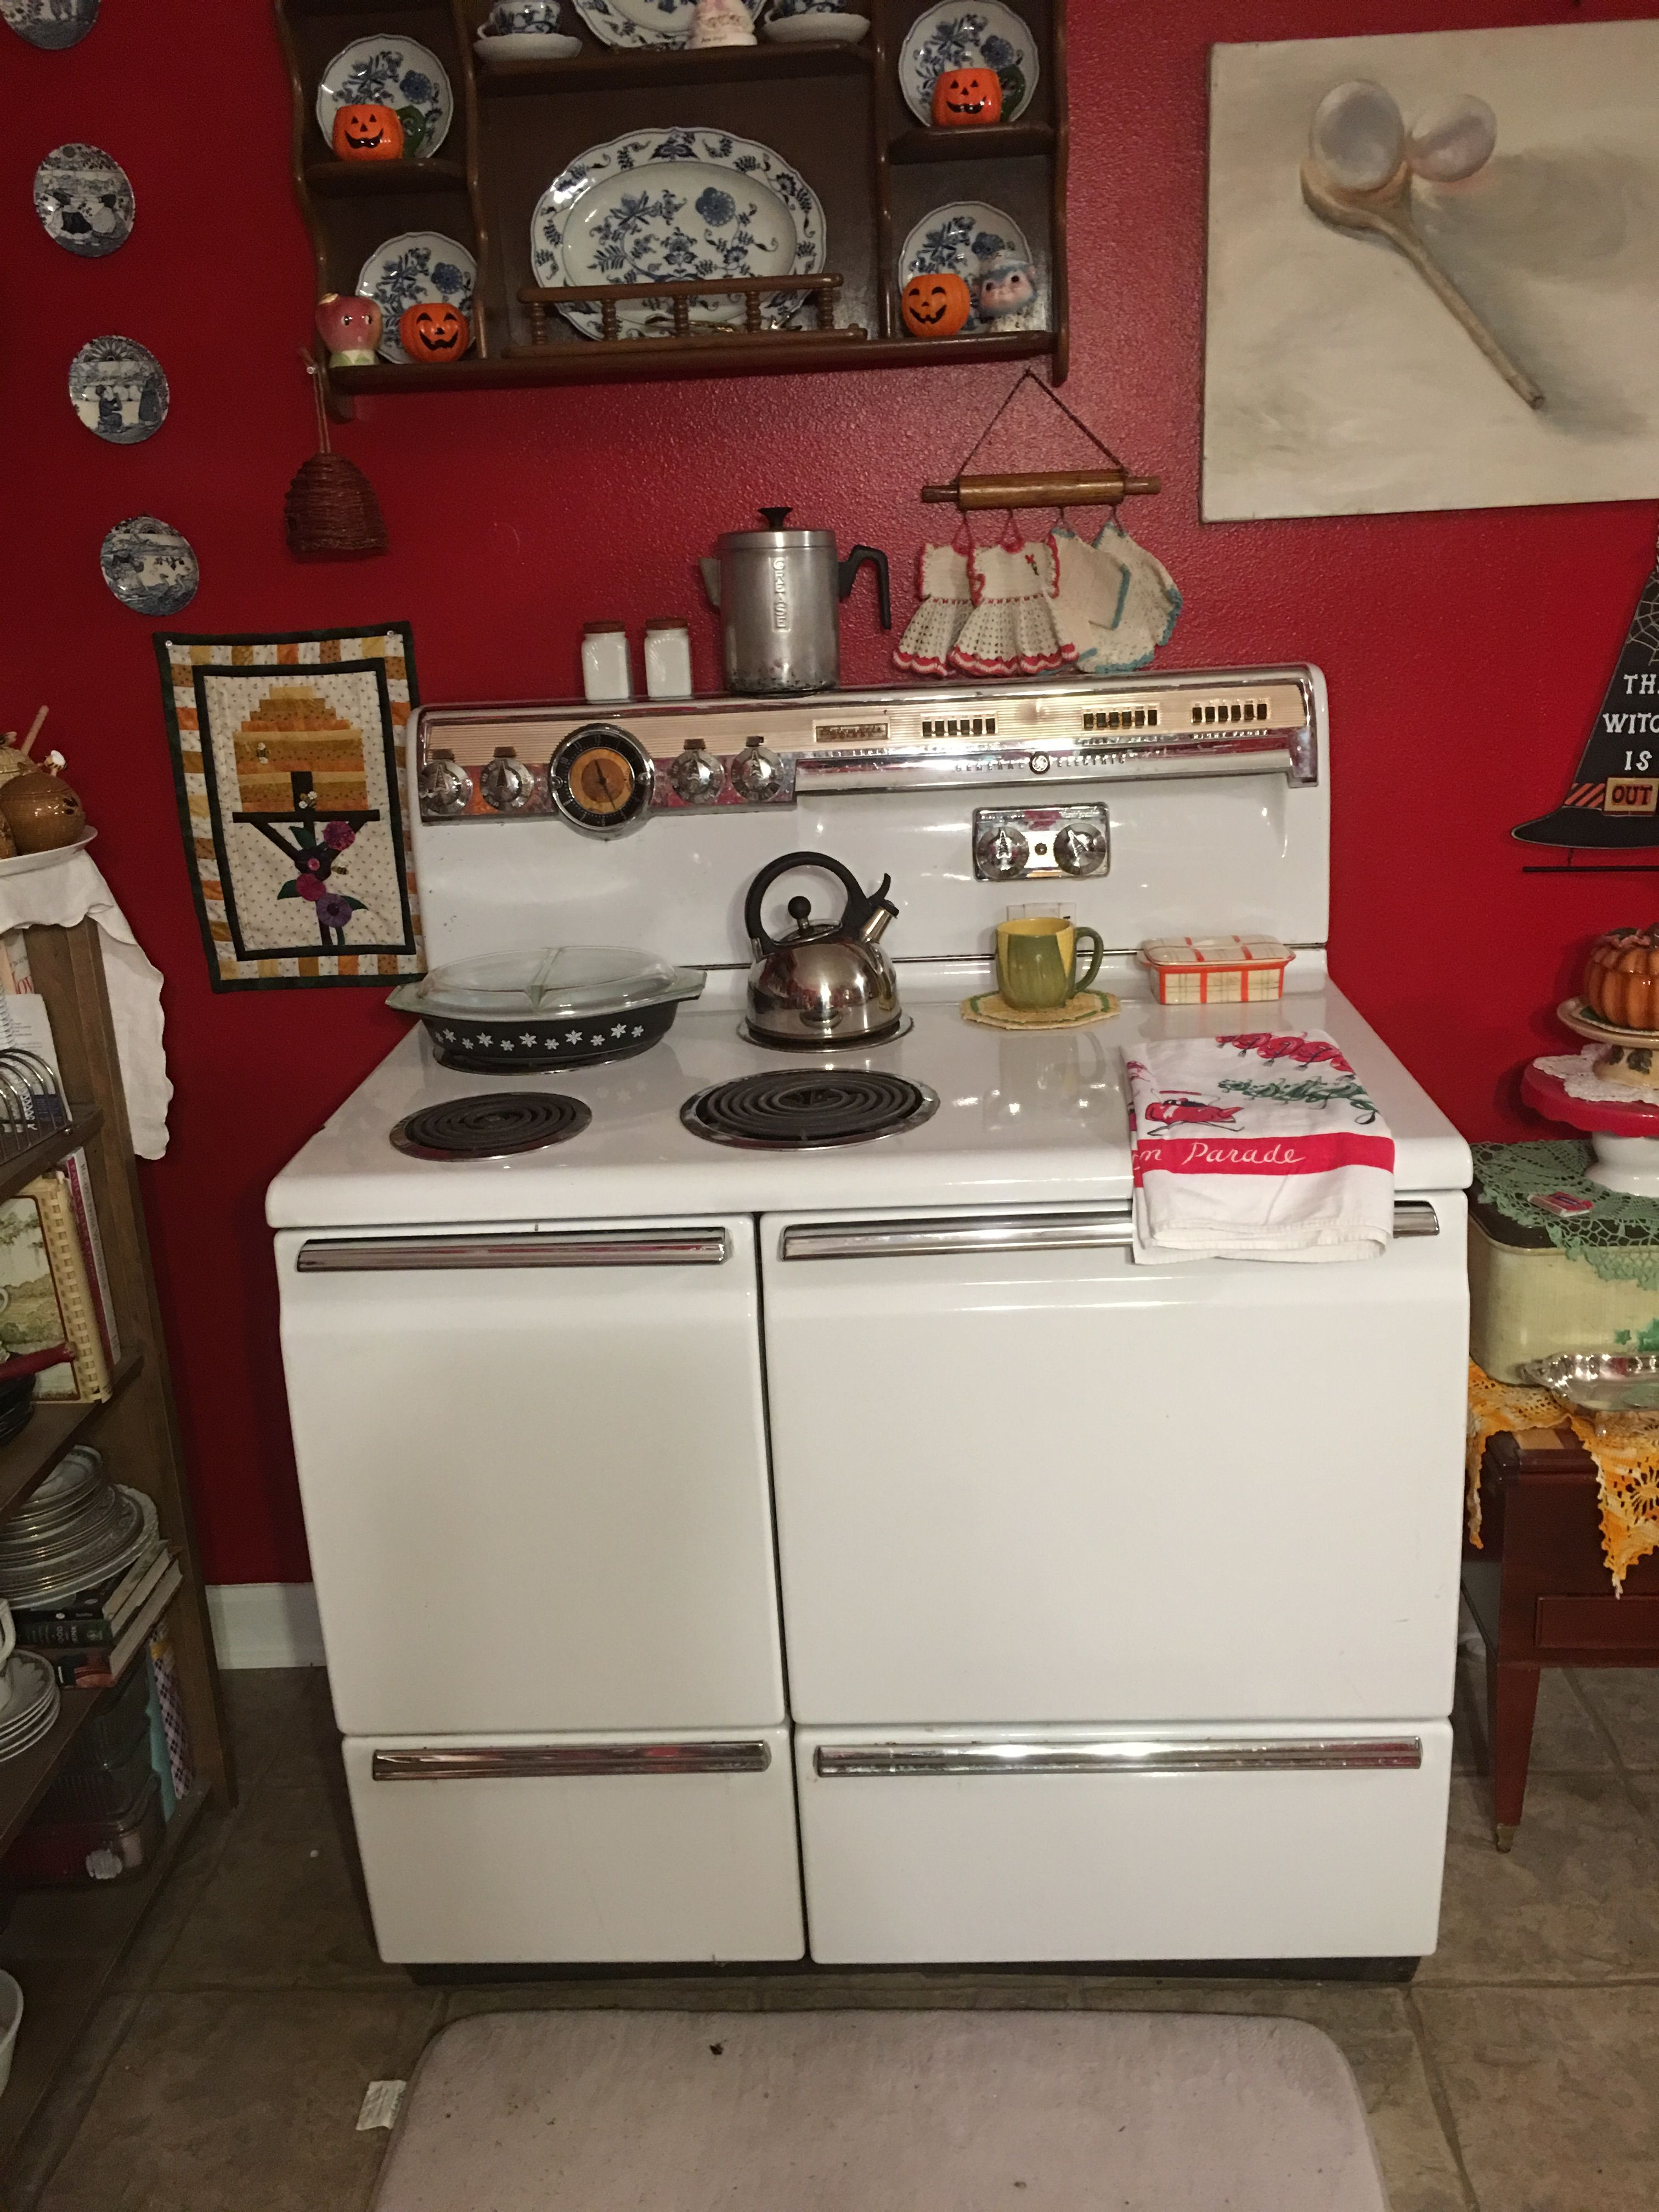 1955 ge liberator electric double oven range and its mine finally have my own vintage stove after years and years of drooling over pinterest pix of